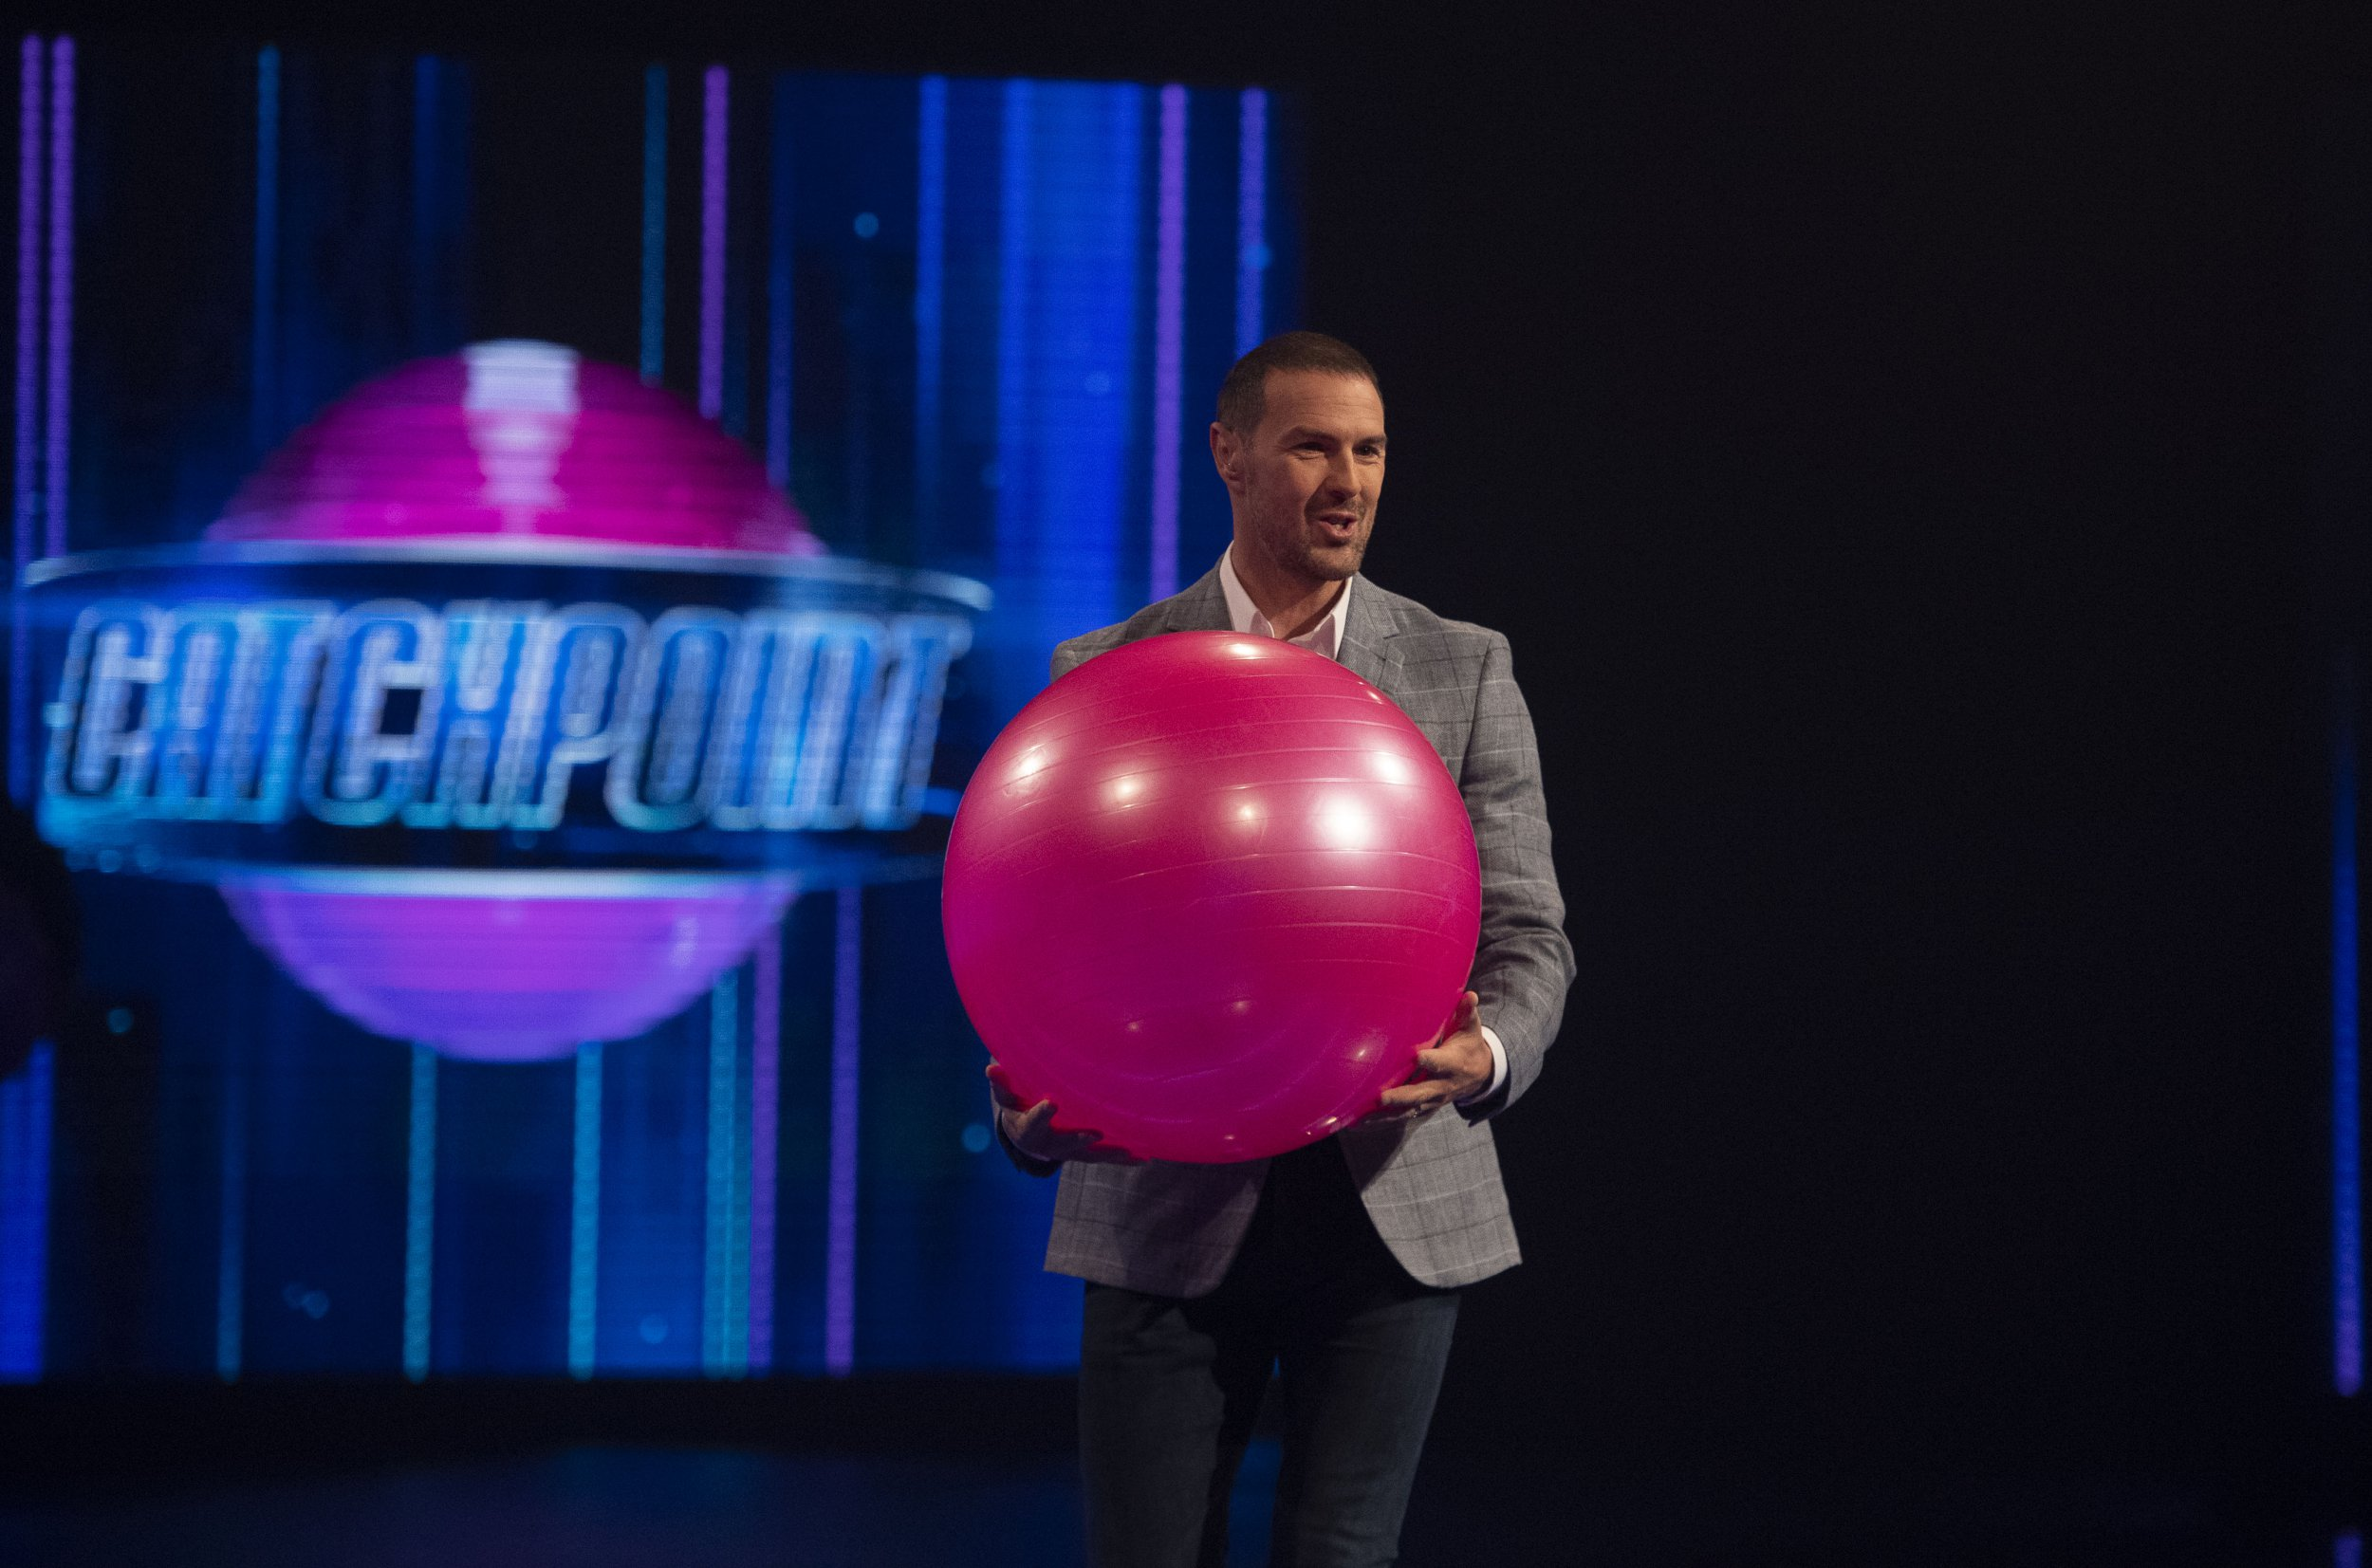 Catchpoint game show: What are the rules and how to watch?